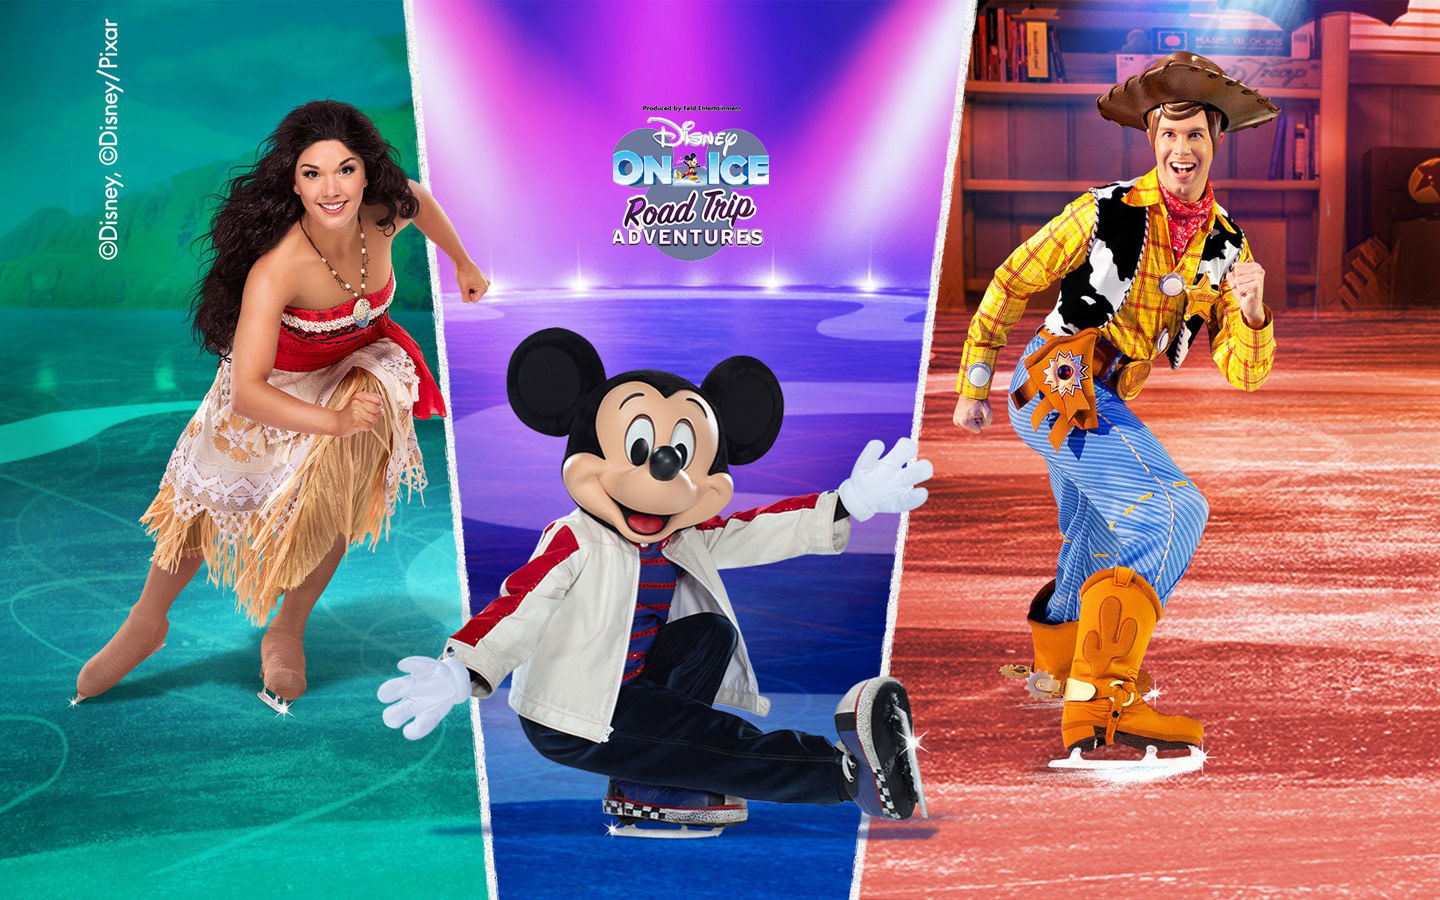 Disney on Ice presenta Road Trip Adventures